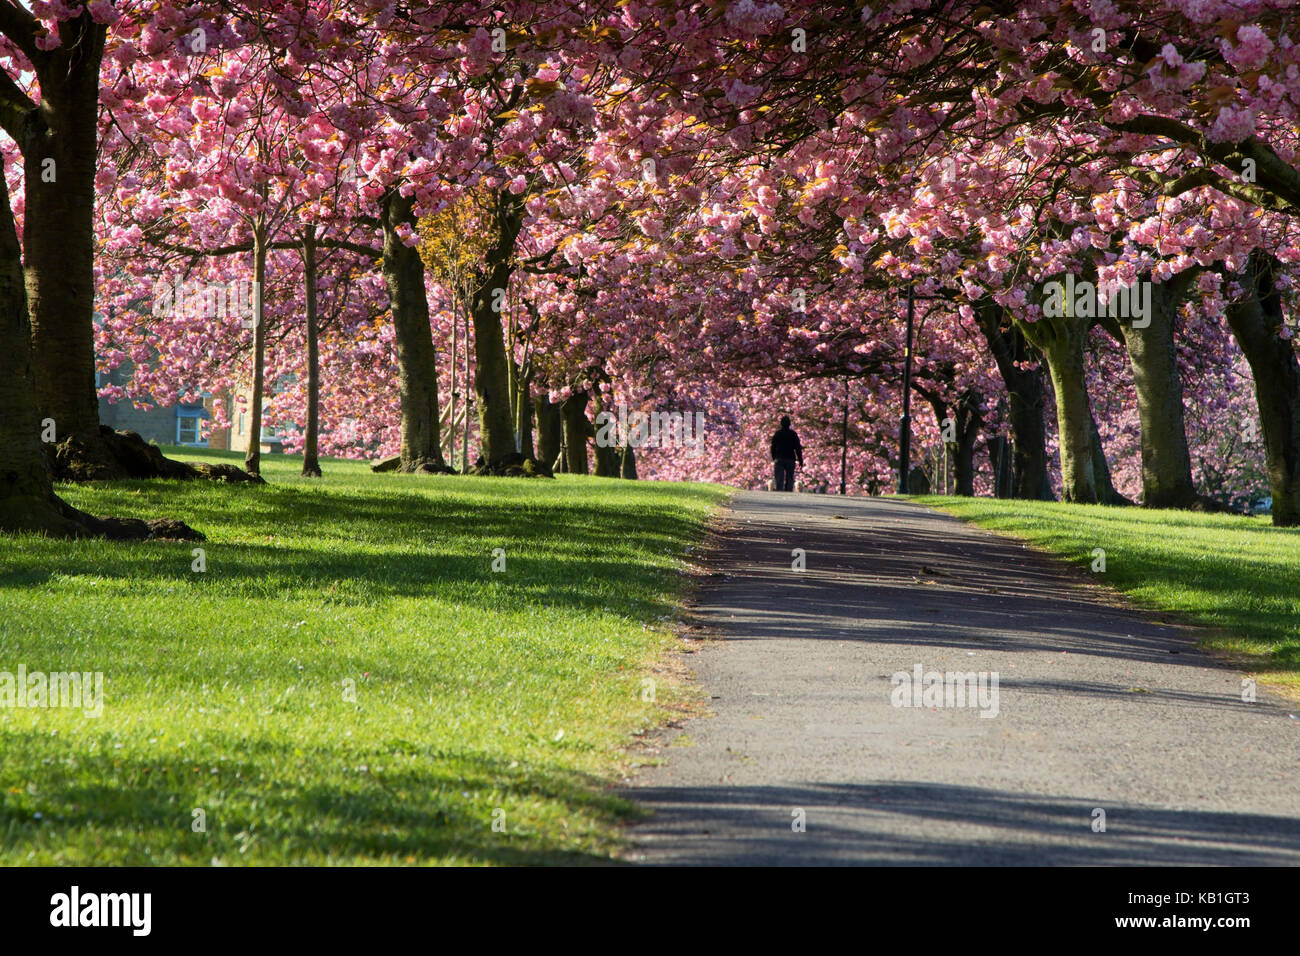 Pink Cherry Trees on Stray Rein in Harrogate,North Yorkshire,England - Stock Image